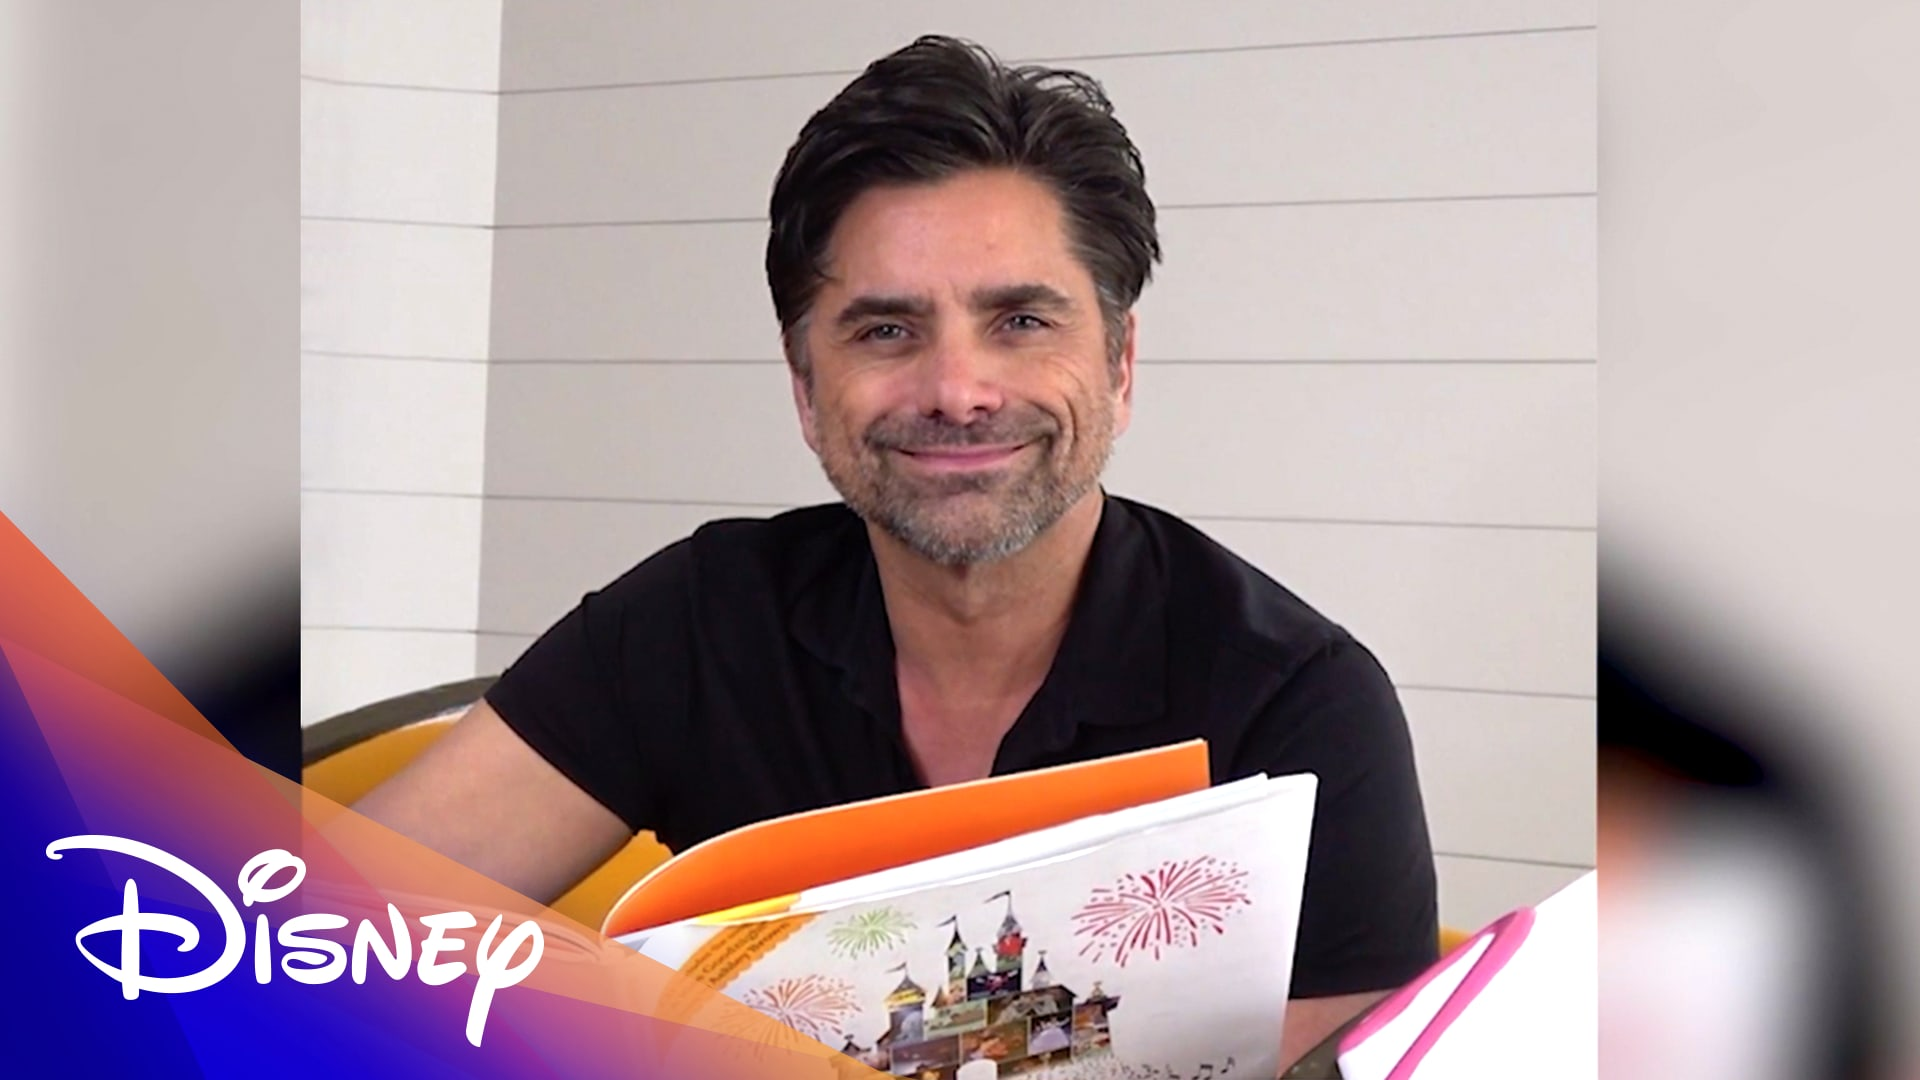 Disney Brings Storytime to Families With John Stamos